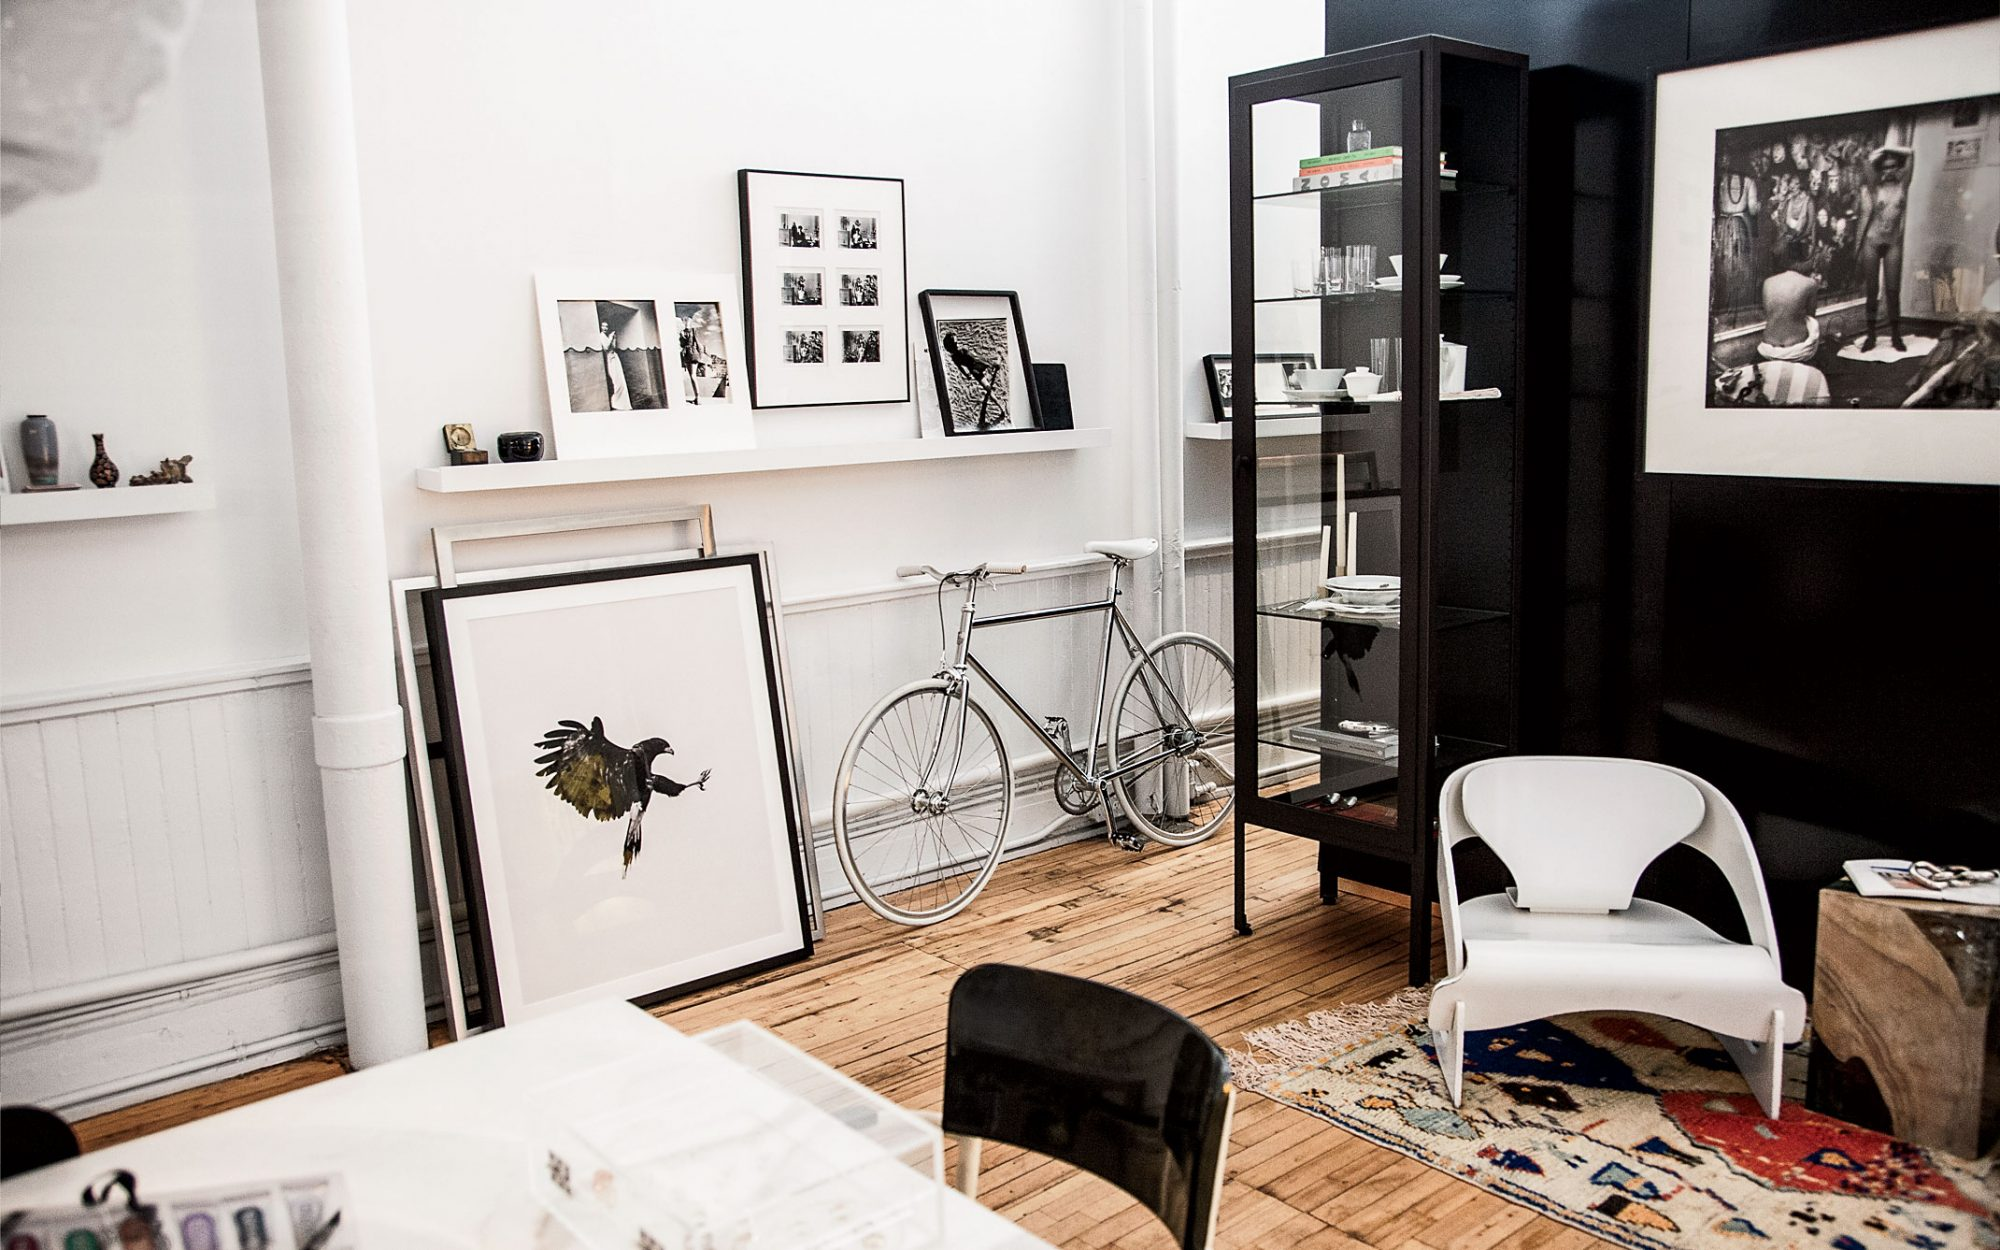 The Stylish Traveler's Guide to Shopping in New York City: The Apartment By the Line